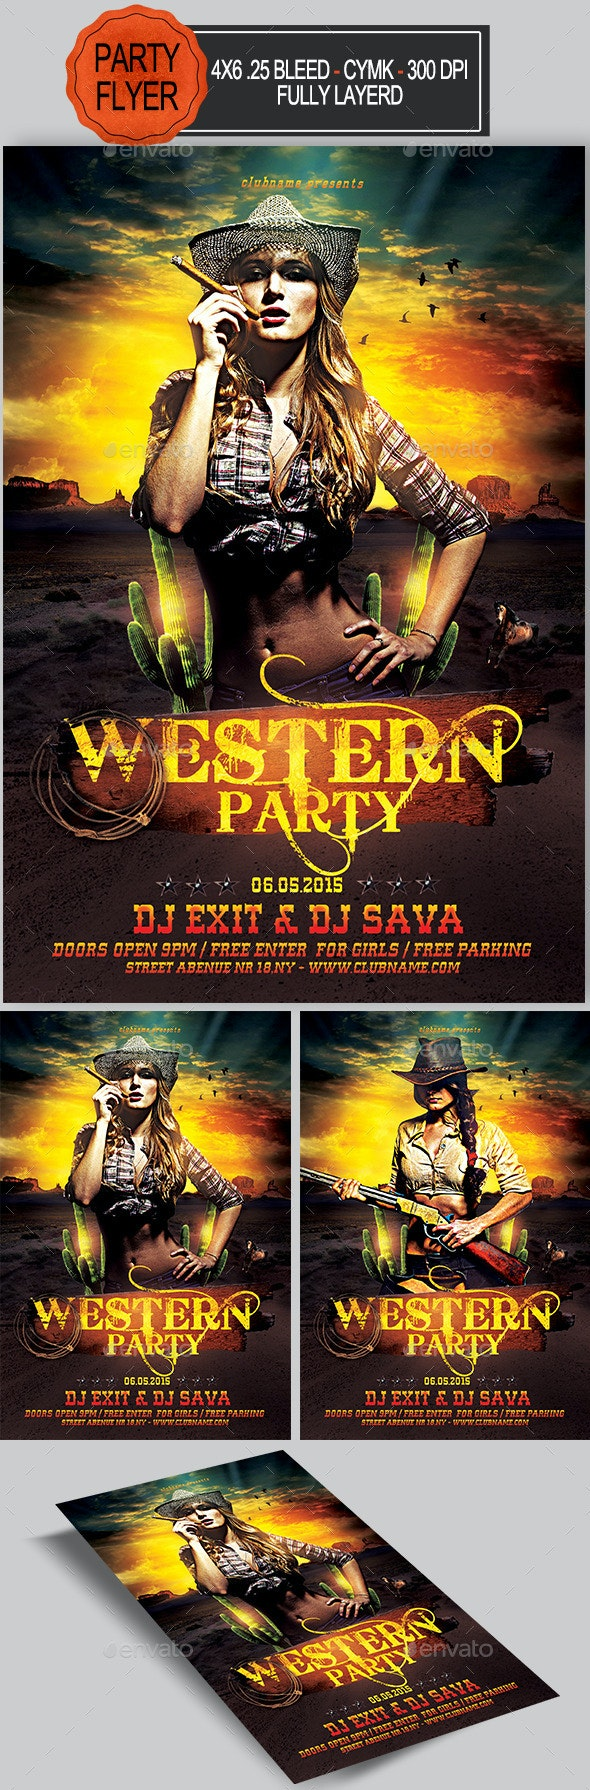 Western Party Flyer   - Clubs & Parties Events